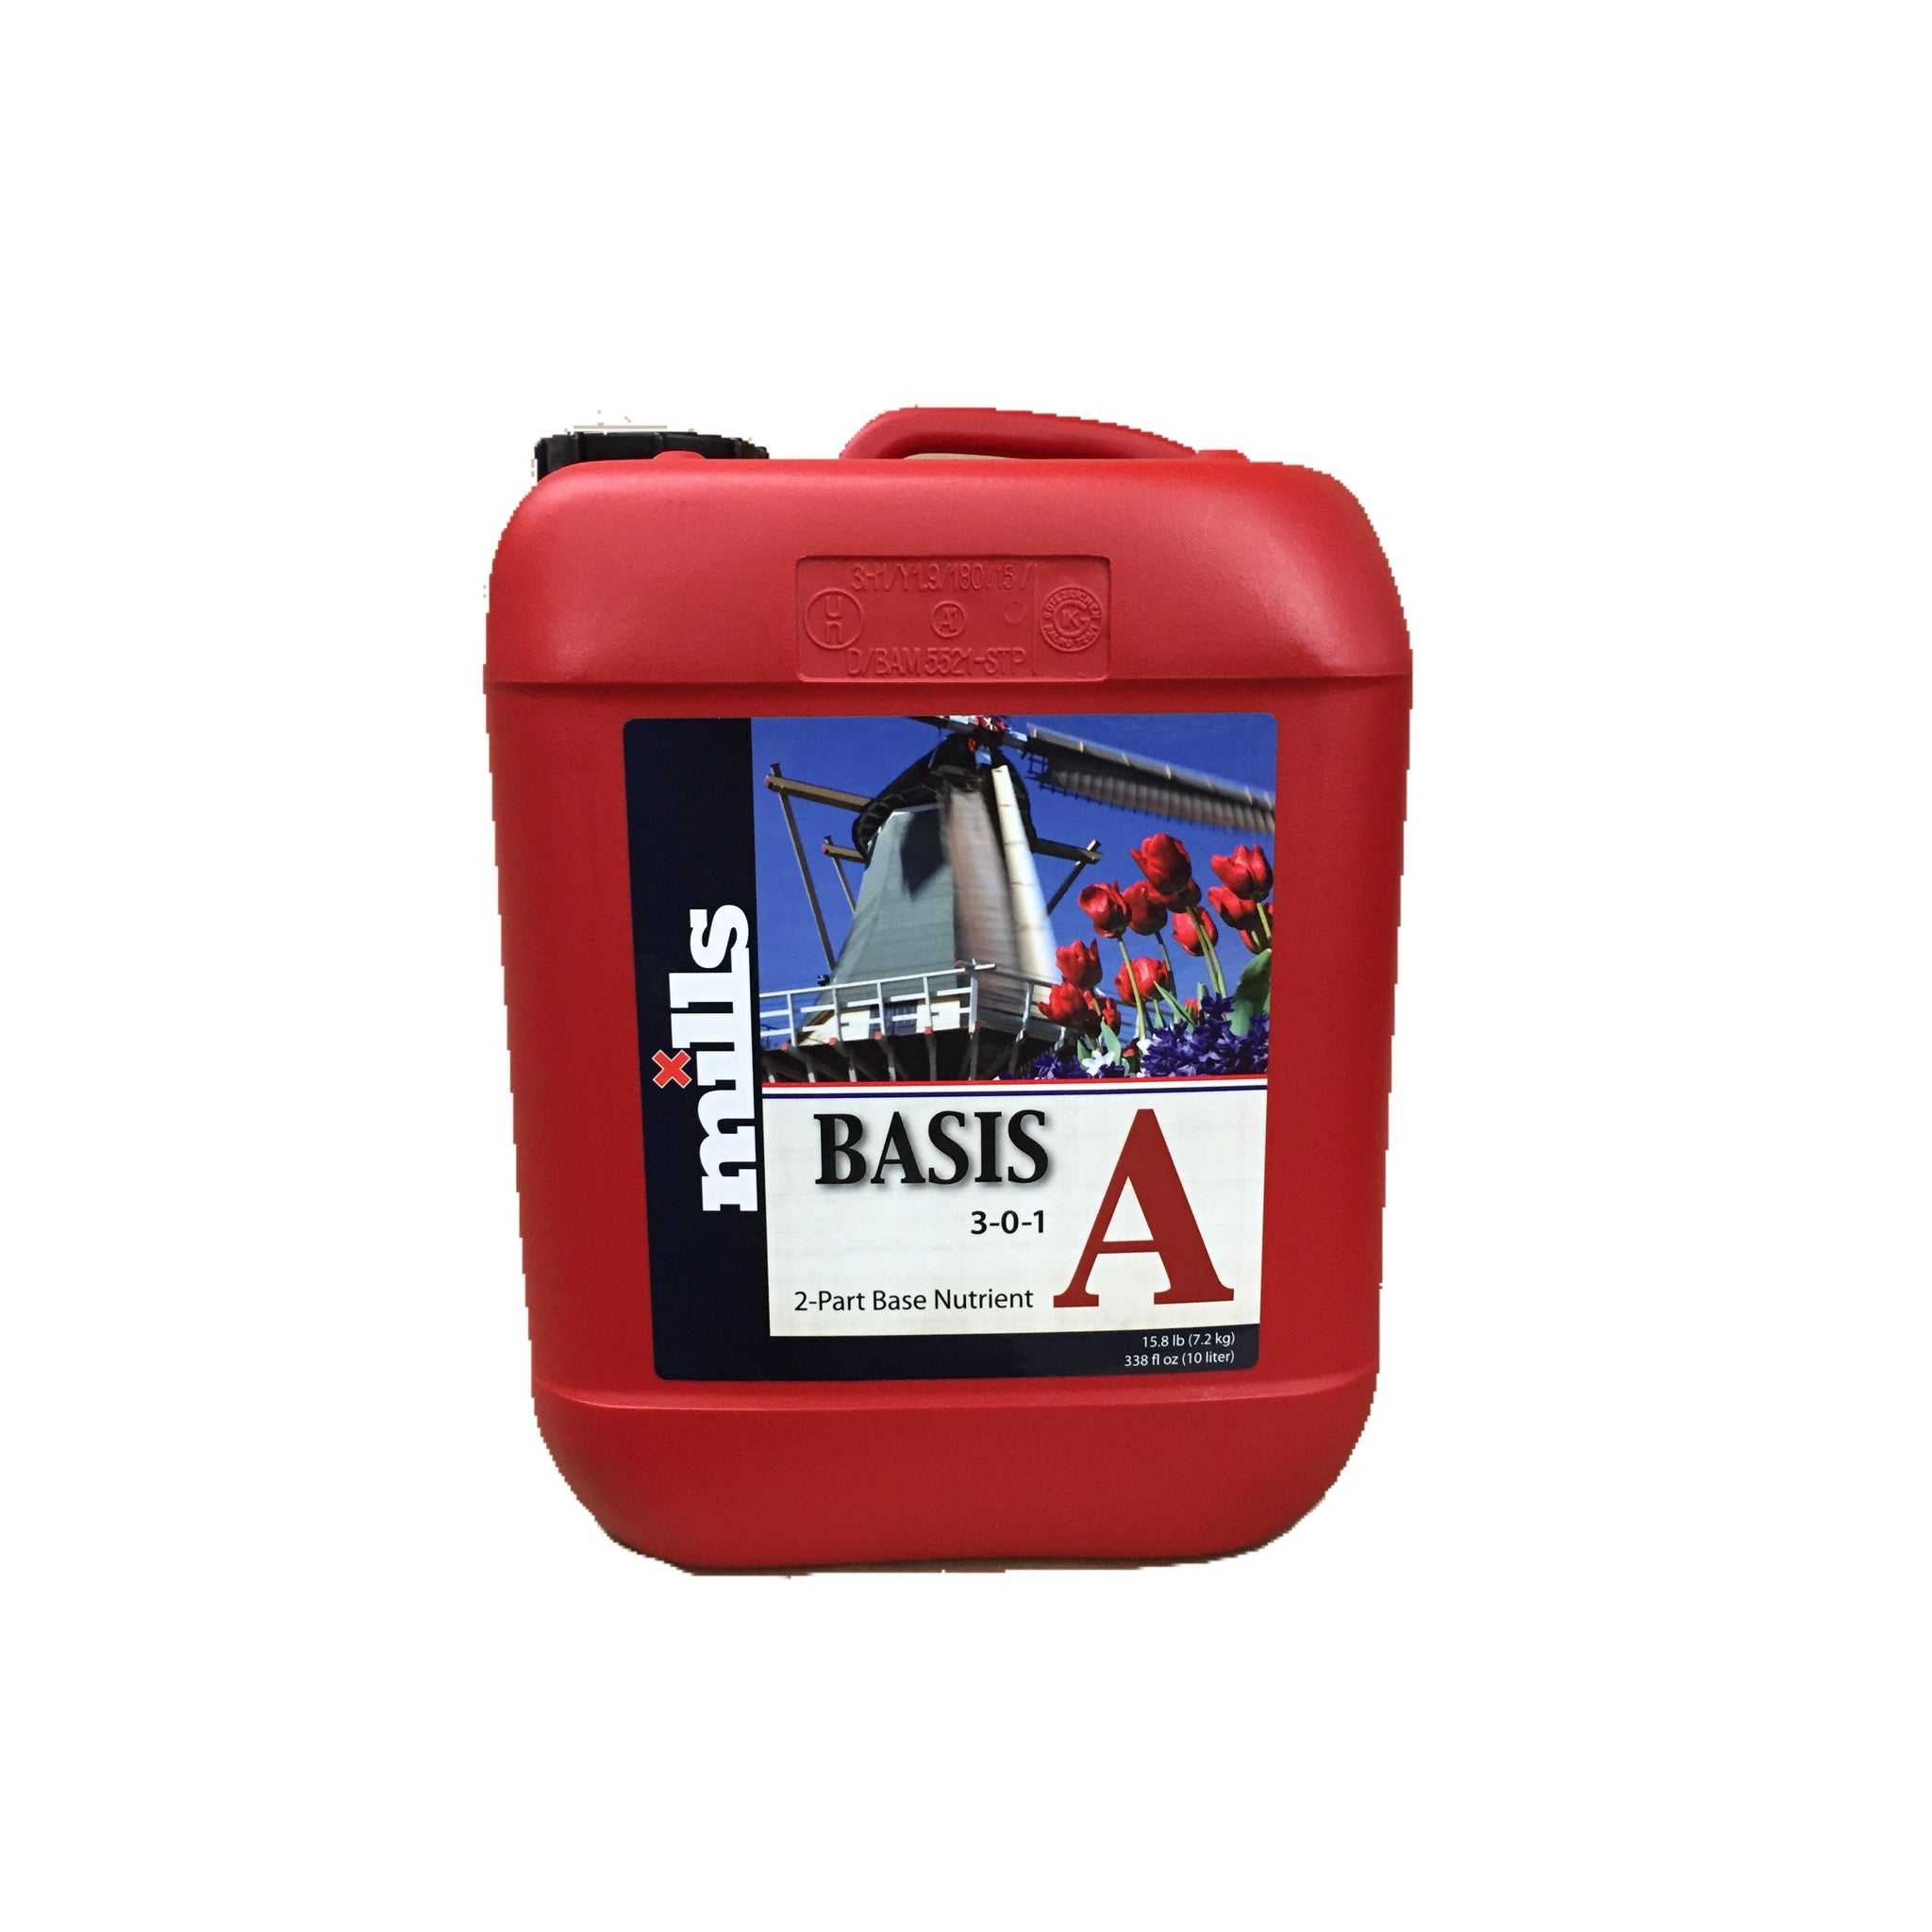 Mills Nutrients Basis A 10L Base Nutrient Mills Nutrients - Pacific Coast Hydroponics Los Angeles